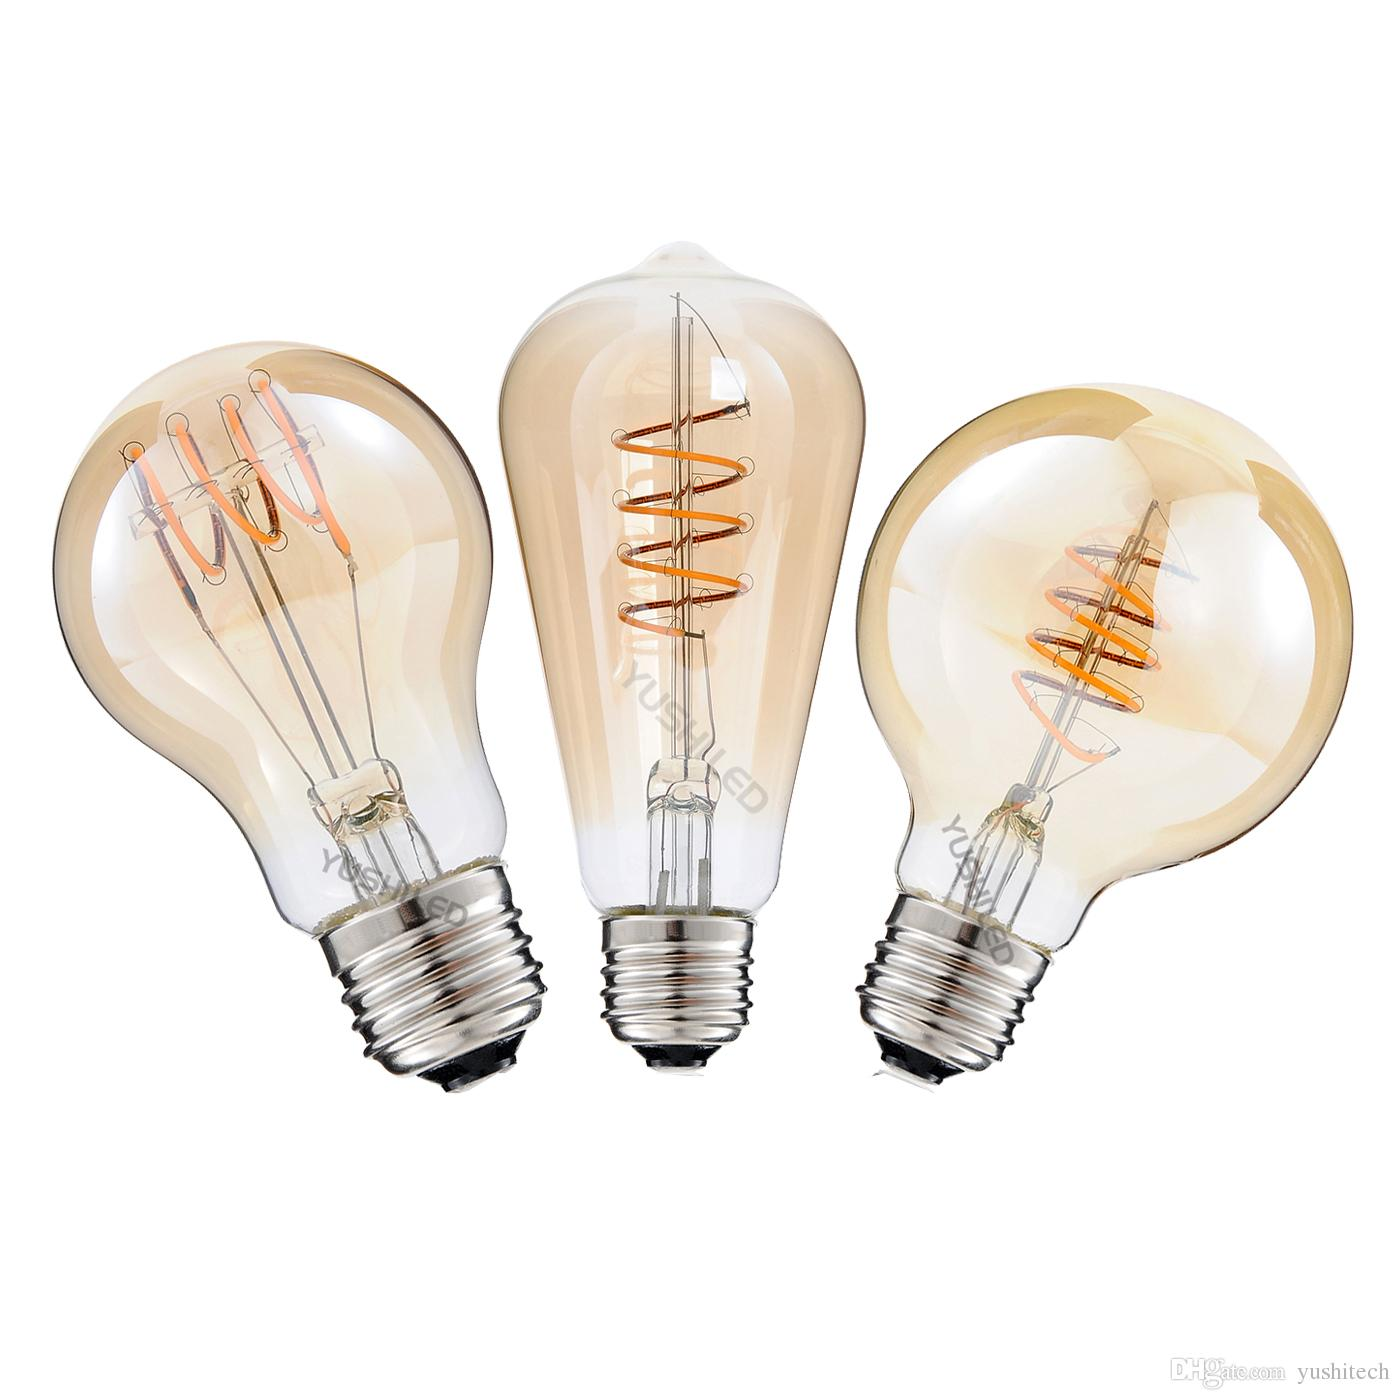 best dimmable 2200k ac110 220v st64g25a19 spiral lamp vintage led filament bulb 4w led light bulb 40w equivalent edison bulb led can light